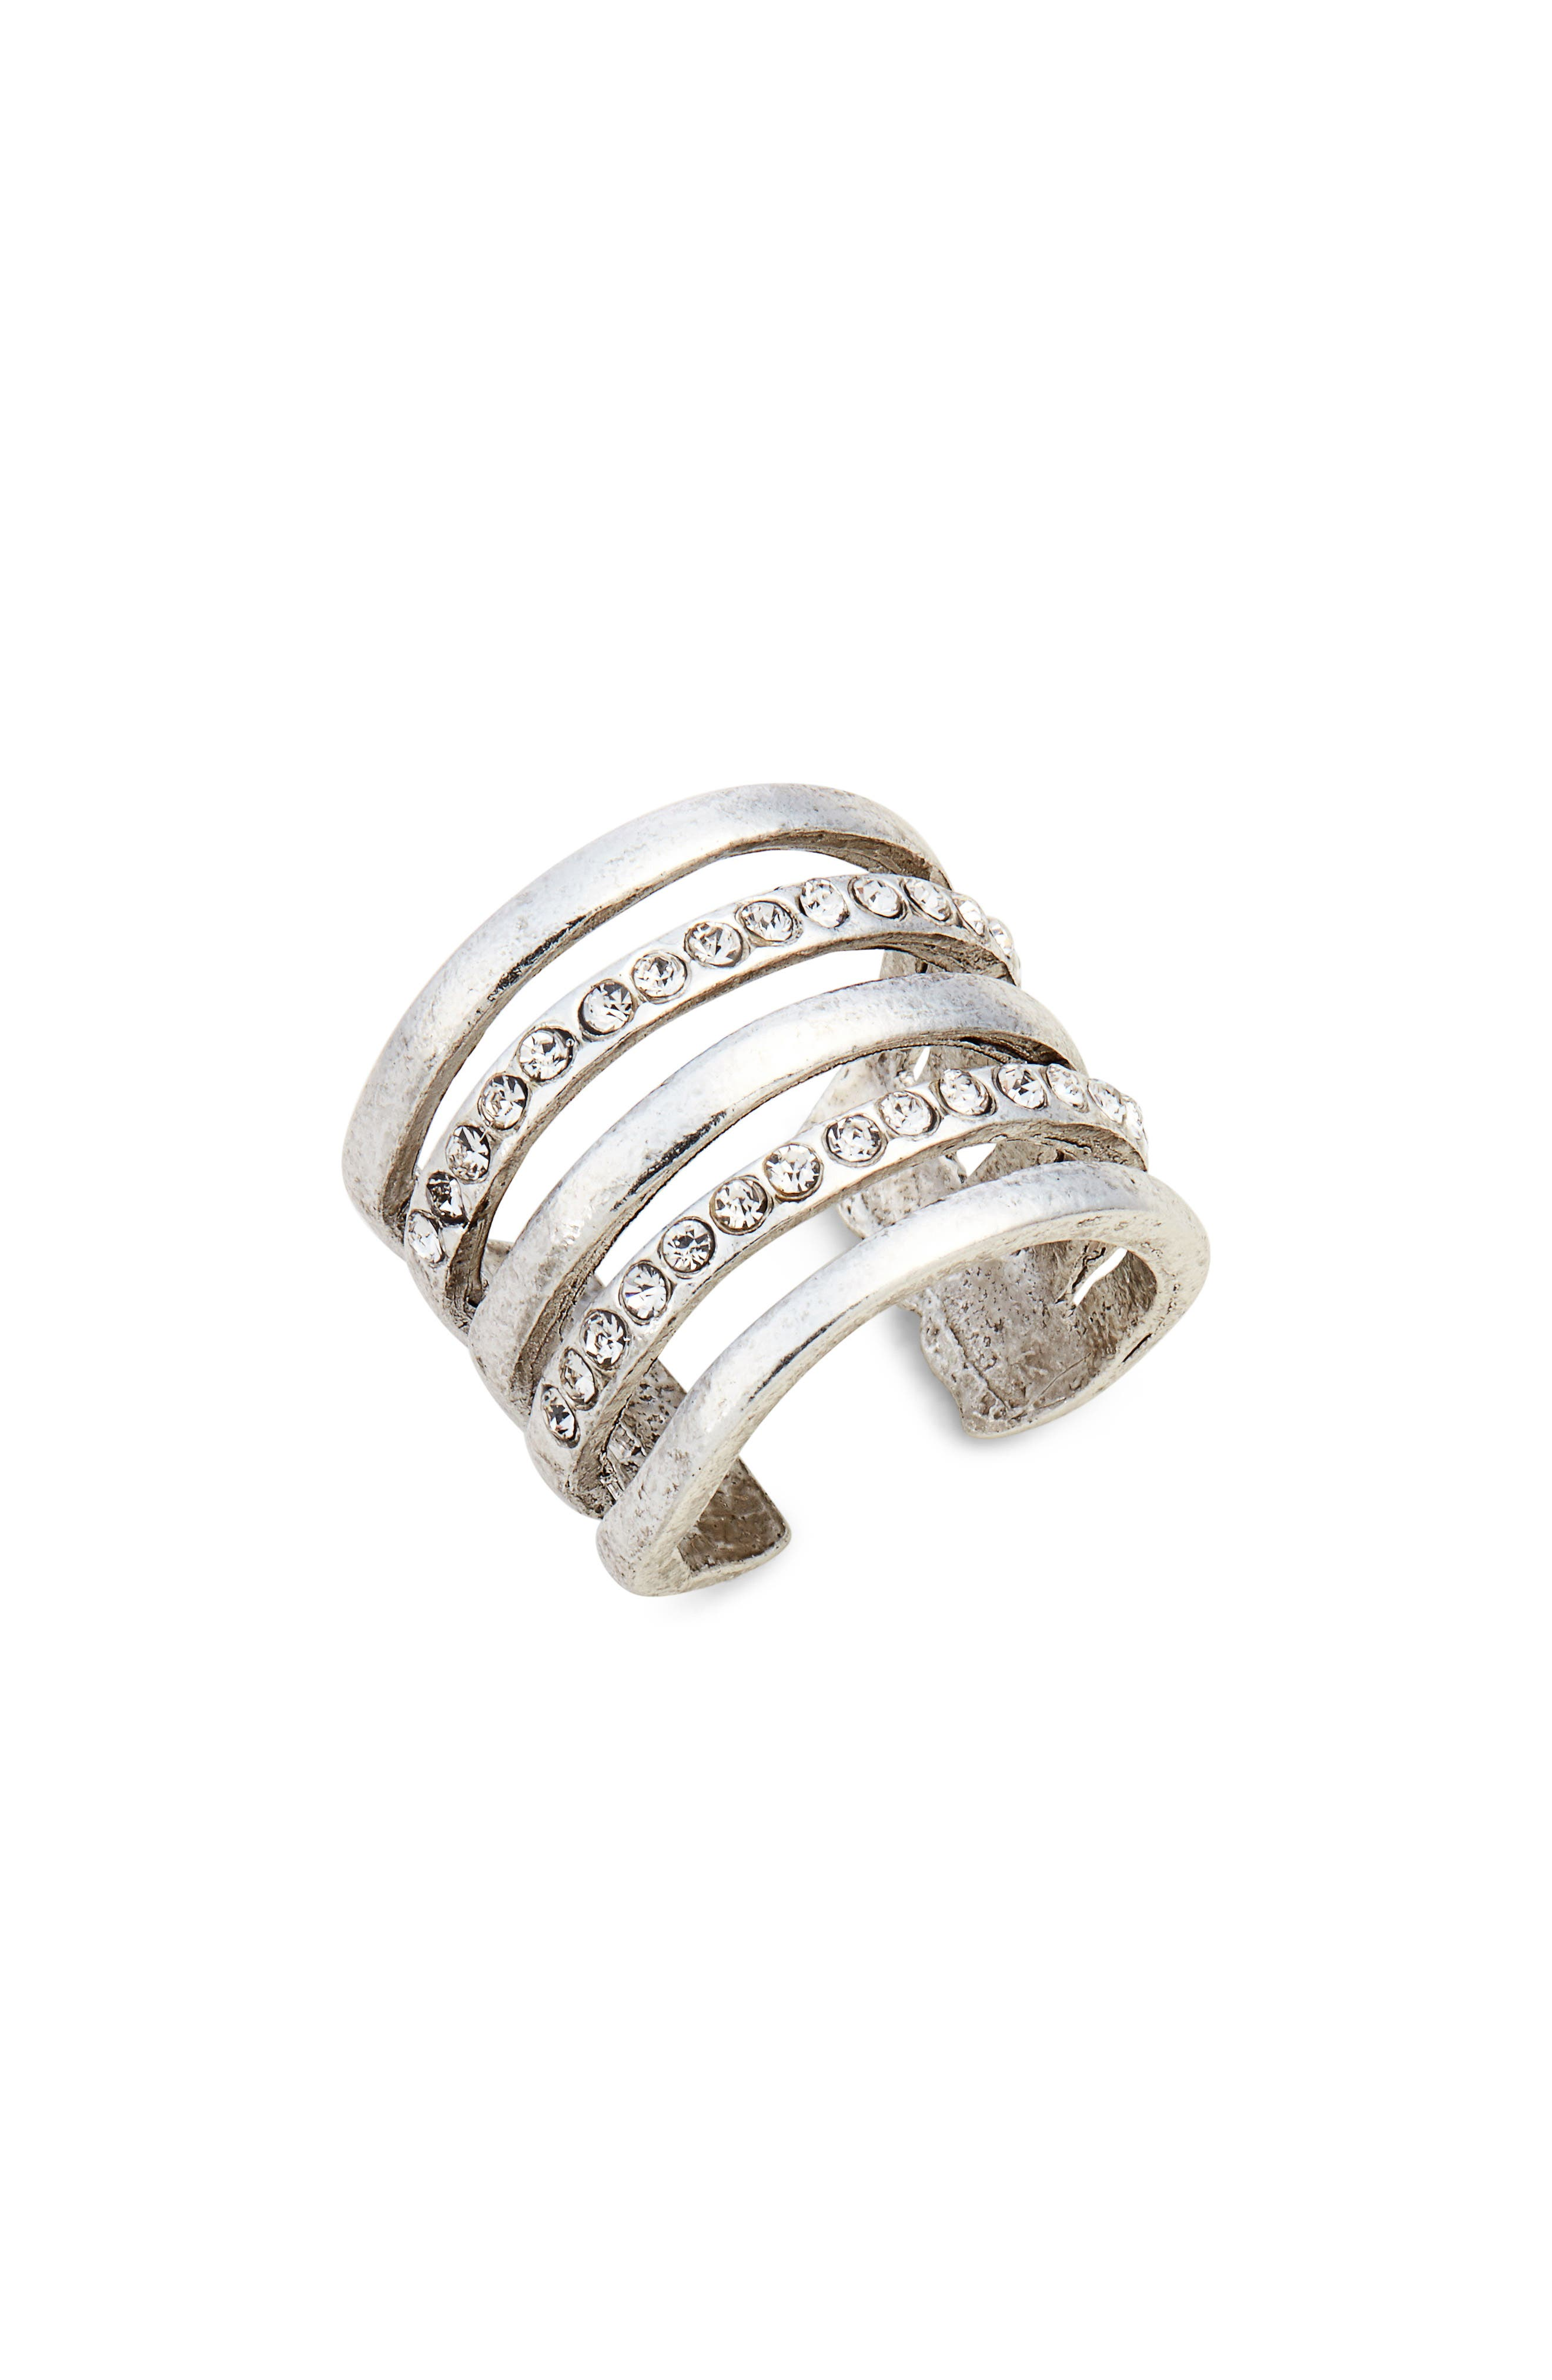 Claire Cage Ring,                         Main,                         color, SILVER